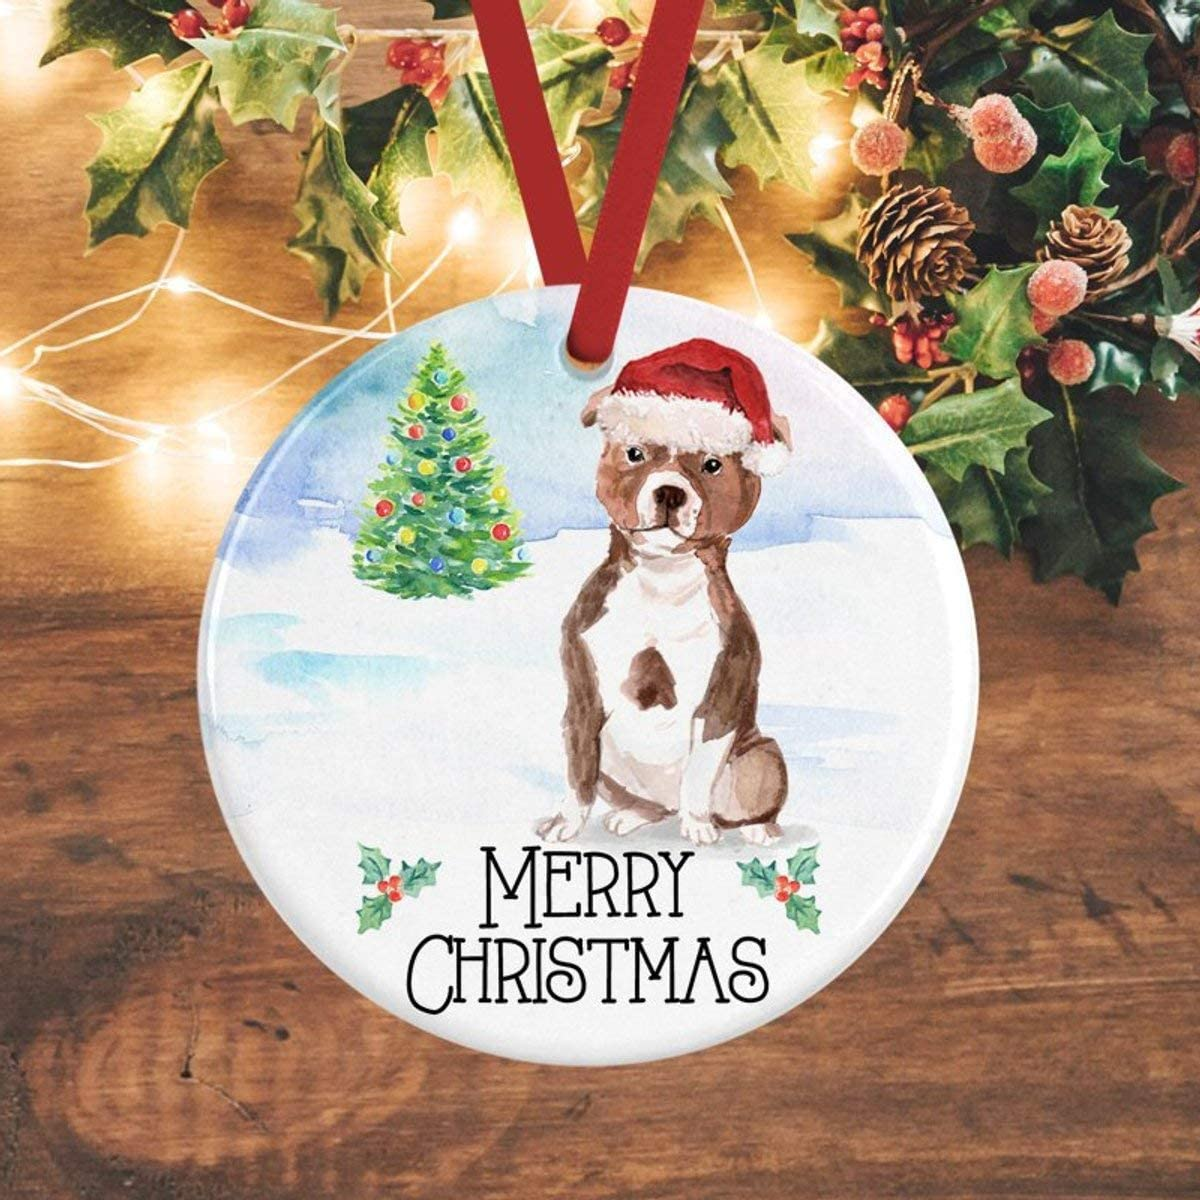 Yilooom Christmas Tree Decor Gift Idea Staffie Ornament Staffordshire Terrier Christmas Decoration Personalised Dog Decoration Staffie Gifts Staffie Amazon Co Uk Kitchen Home